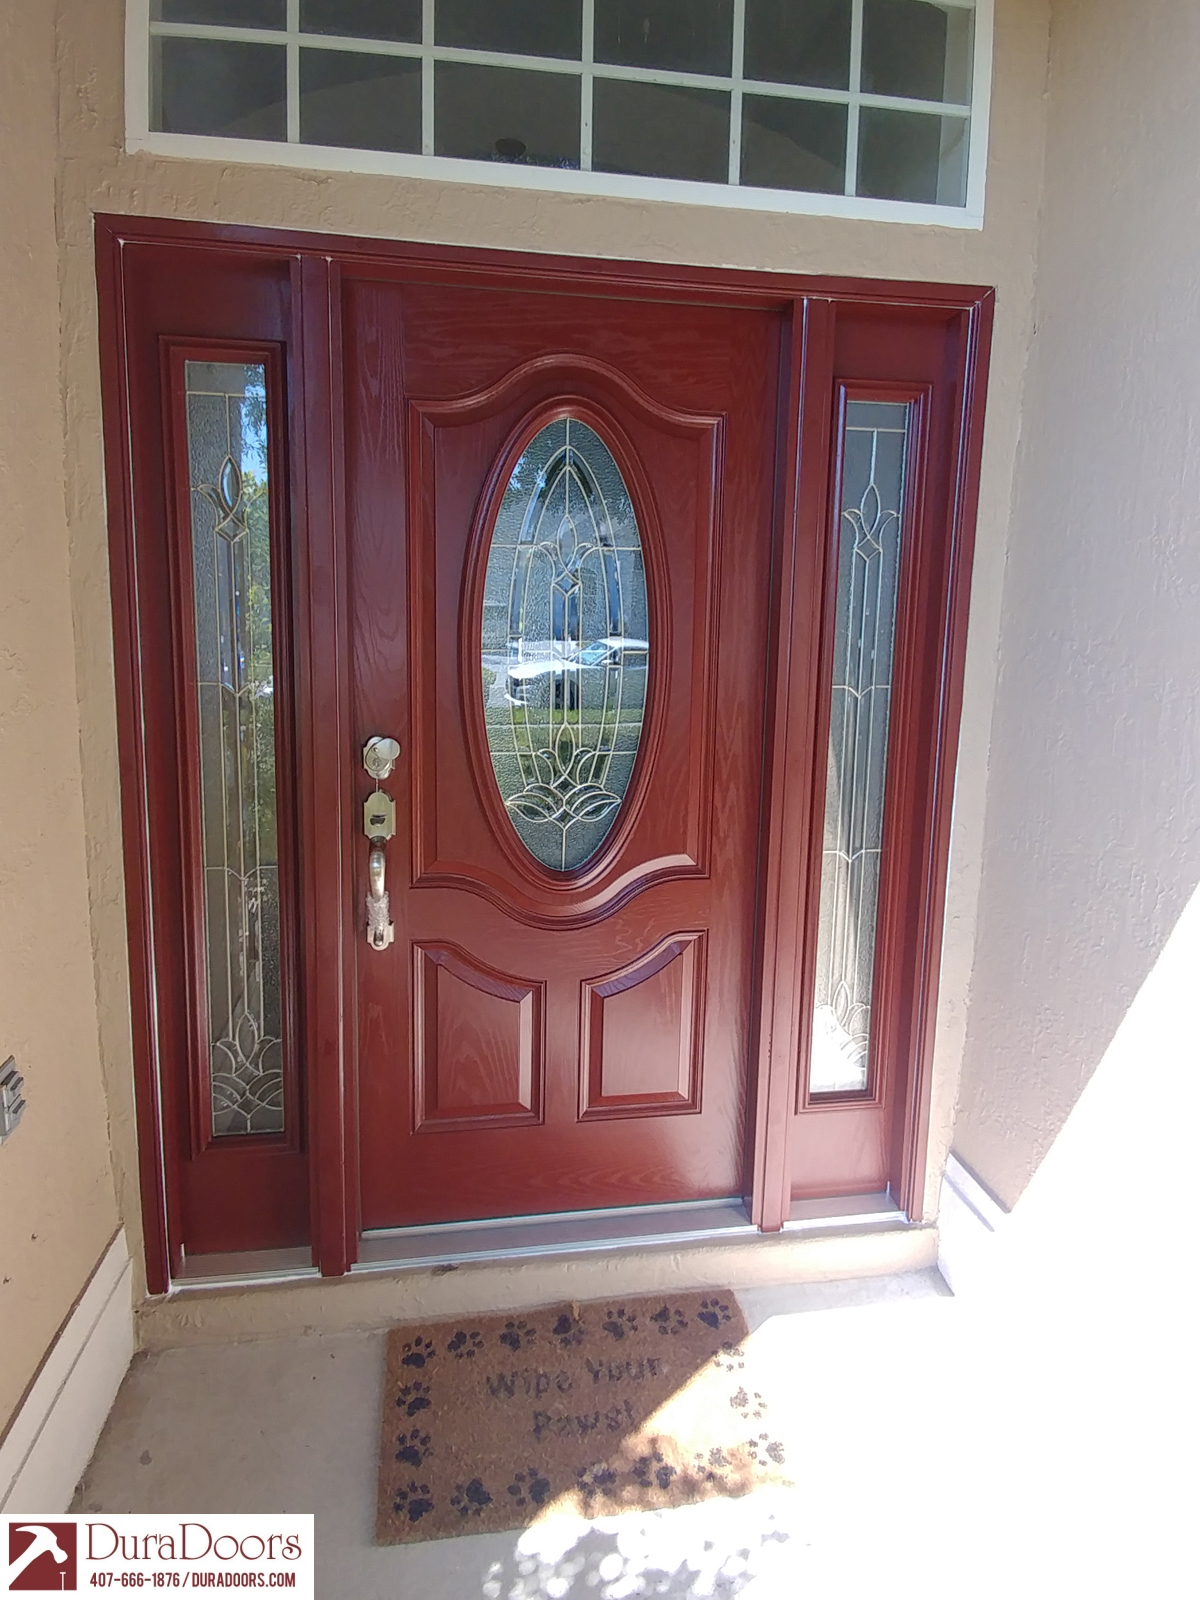 Mahogany Finish With Bristol Oval Duradoors